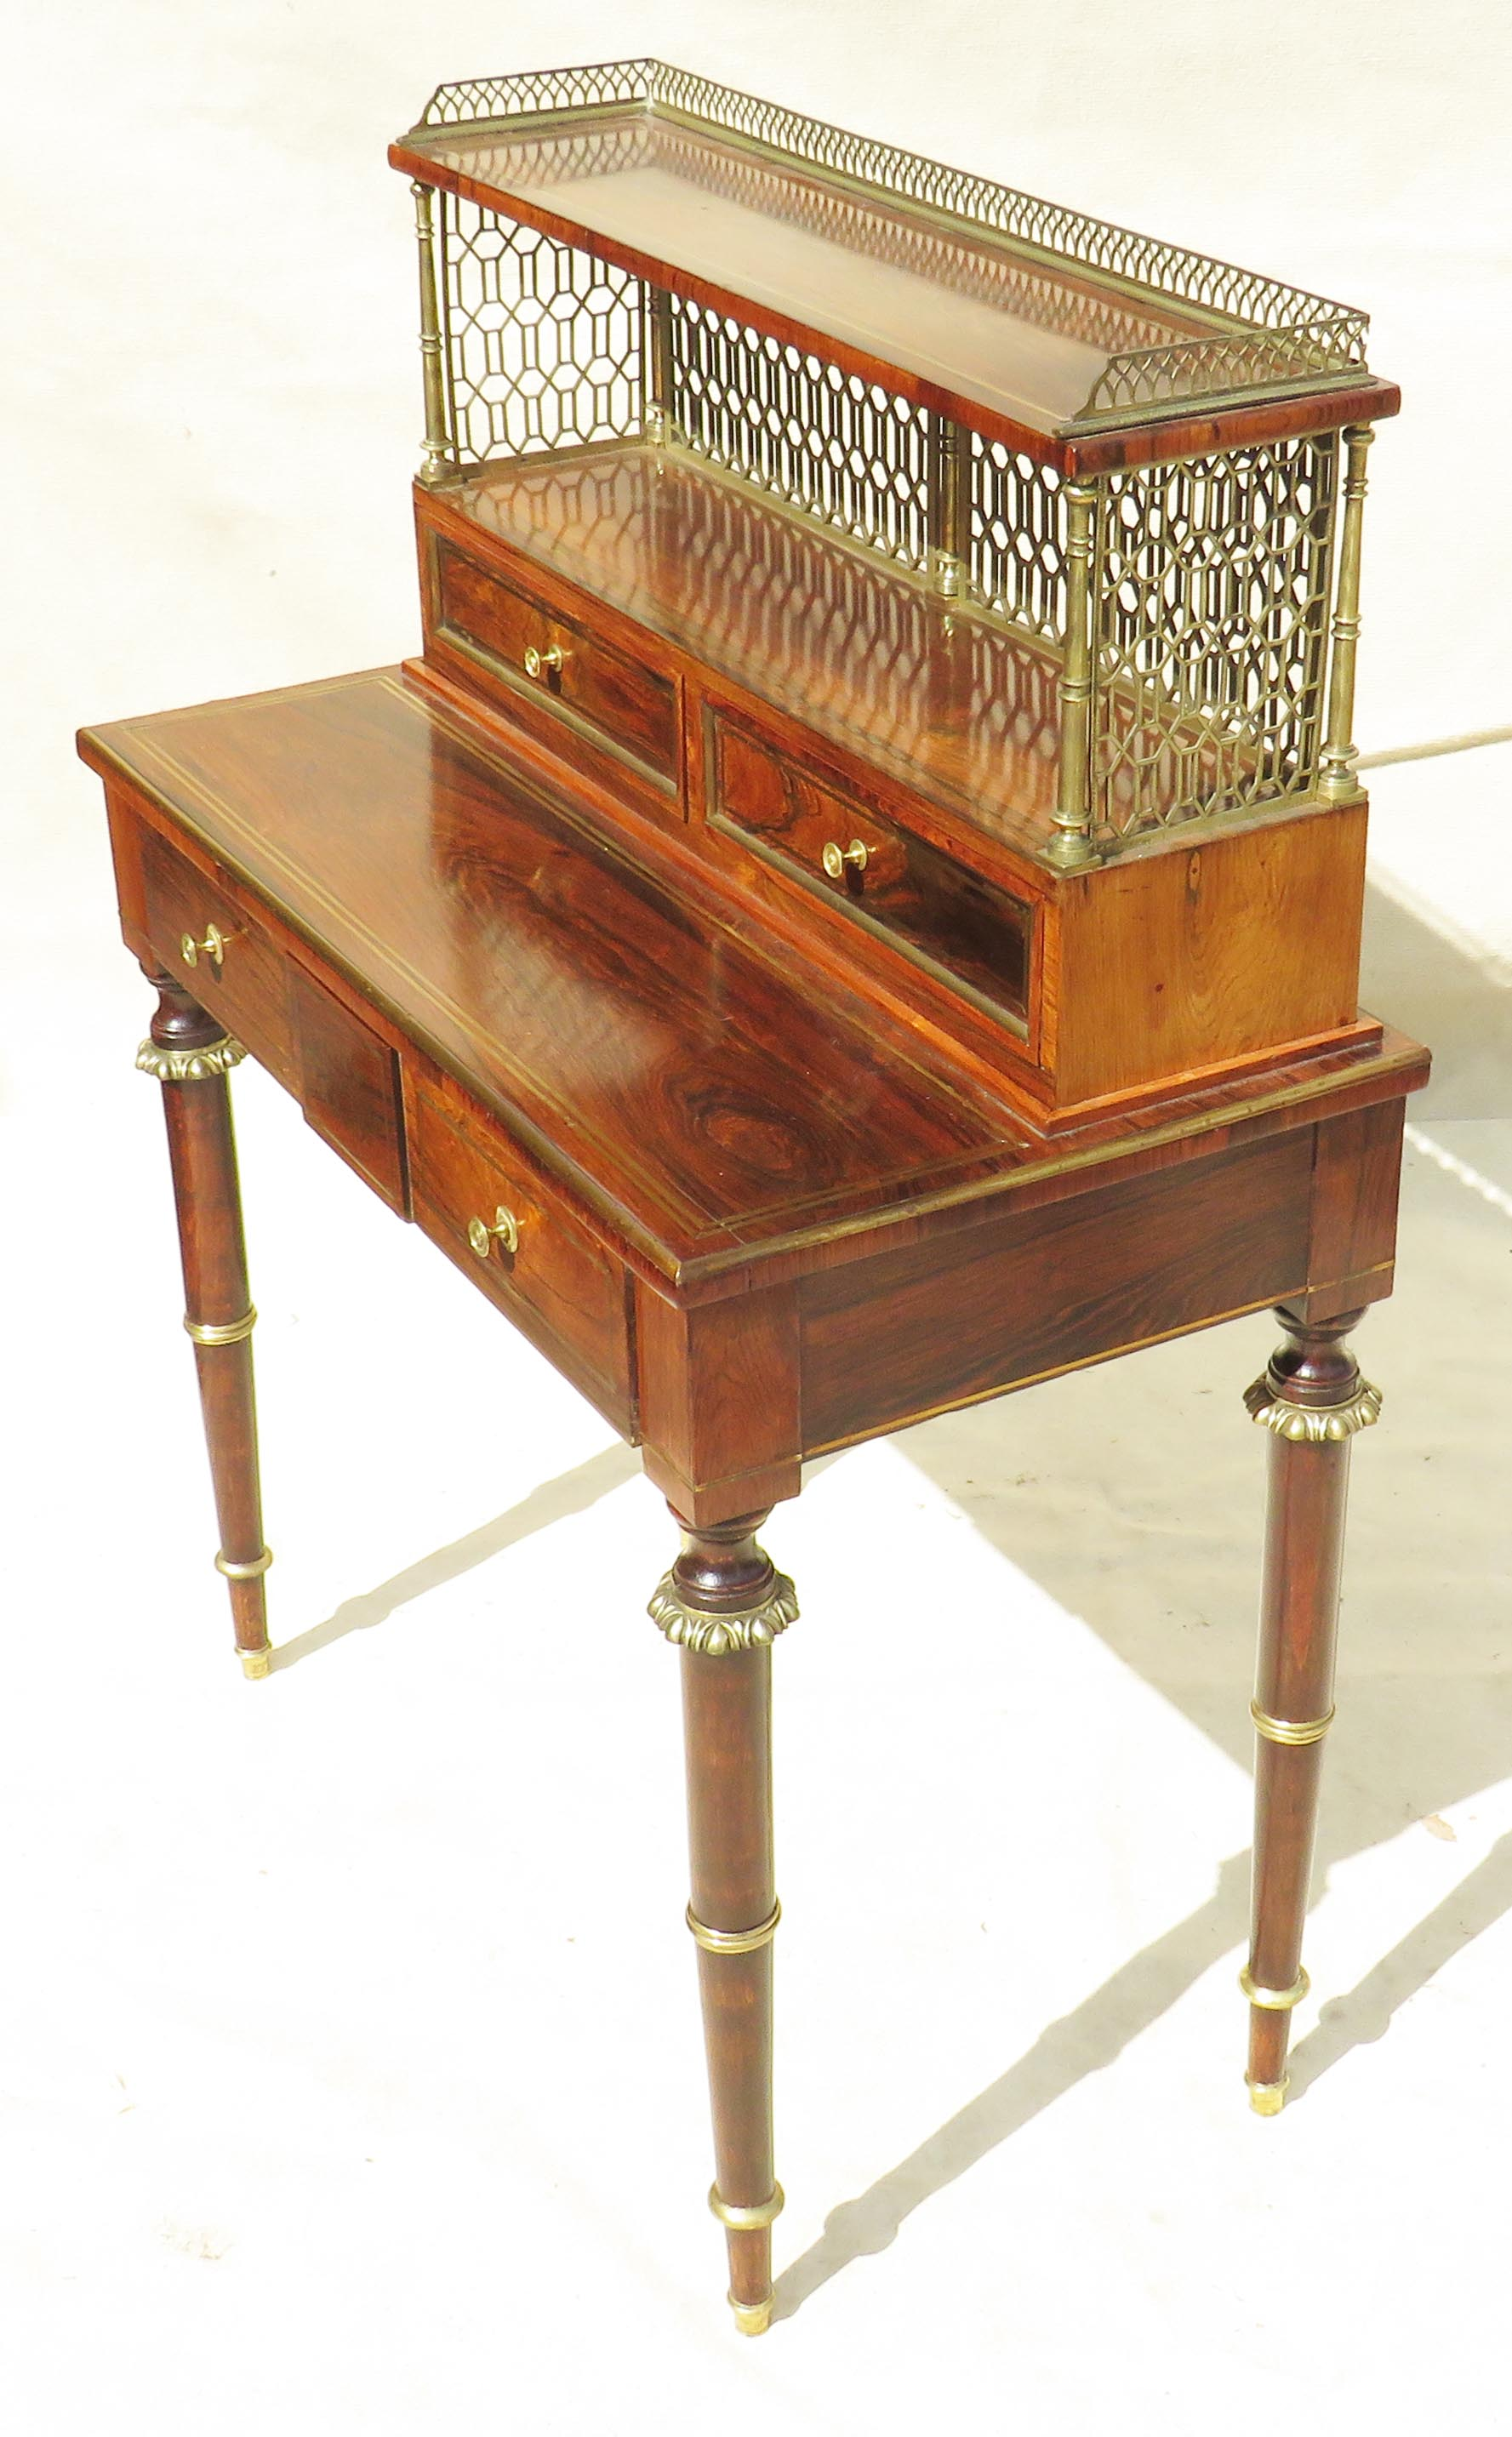 Superb quality Regency period early 19th Century rosewood bonheur du jour - Image 2 of 7